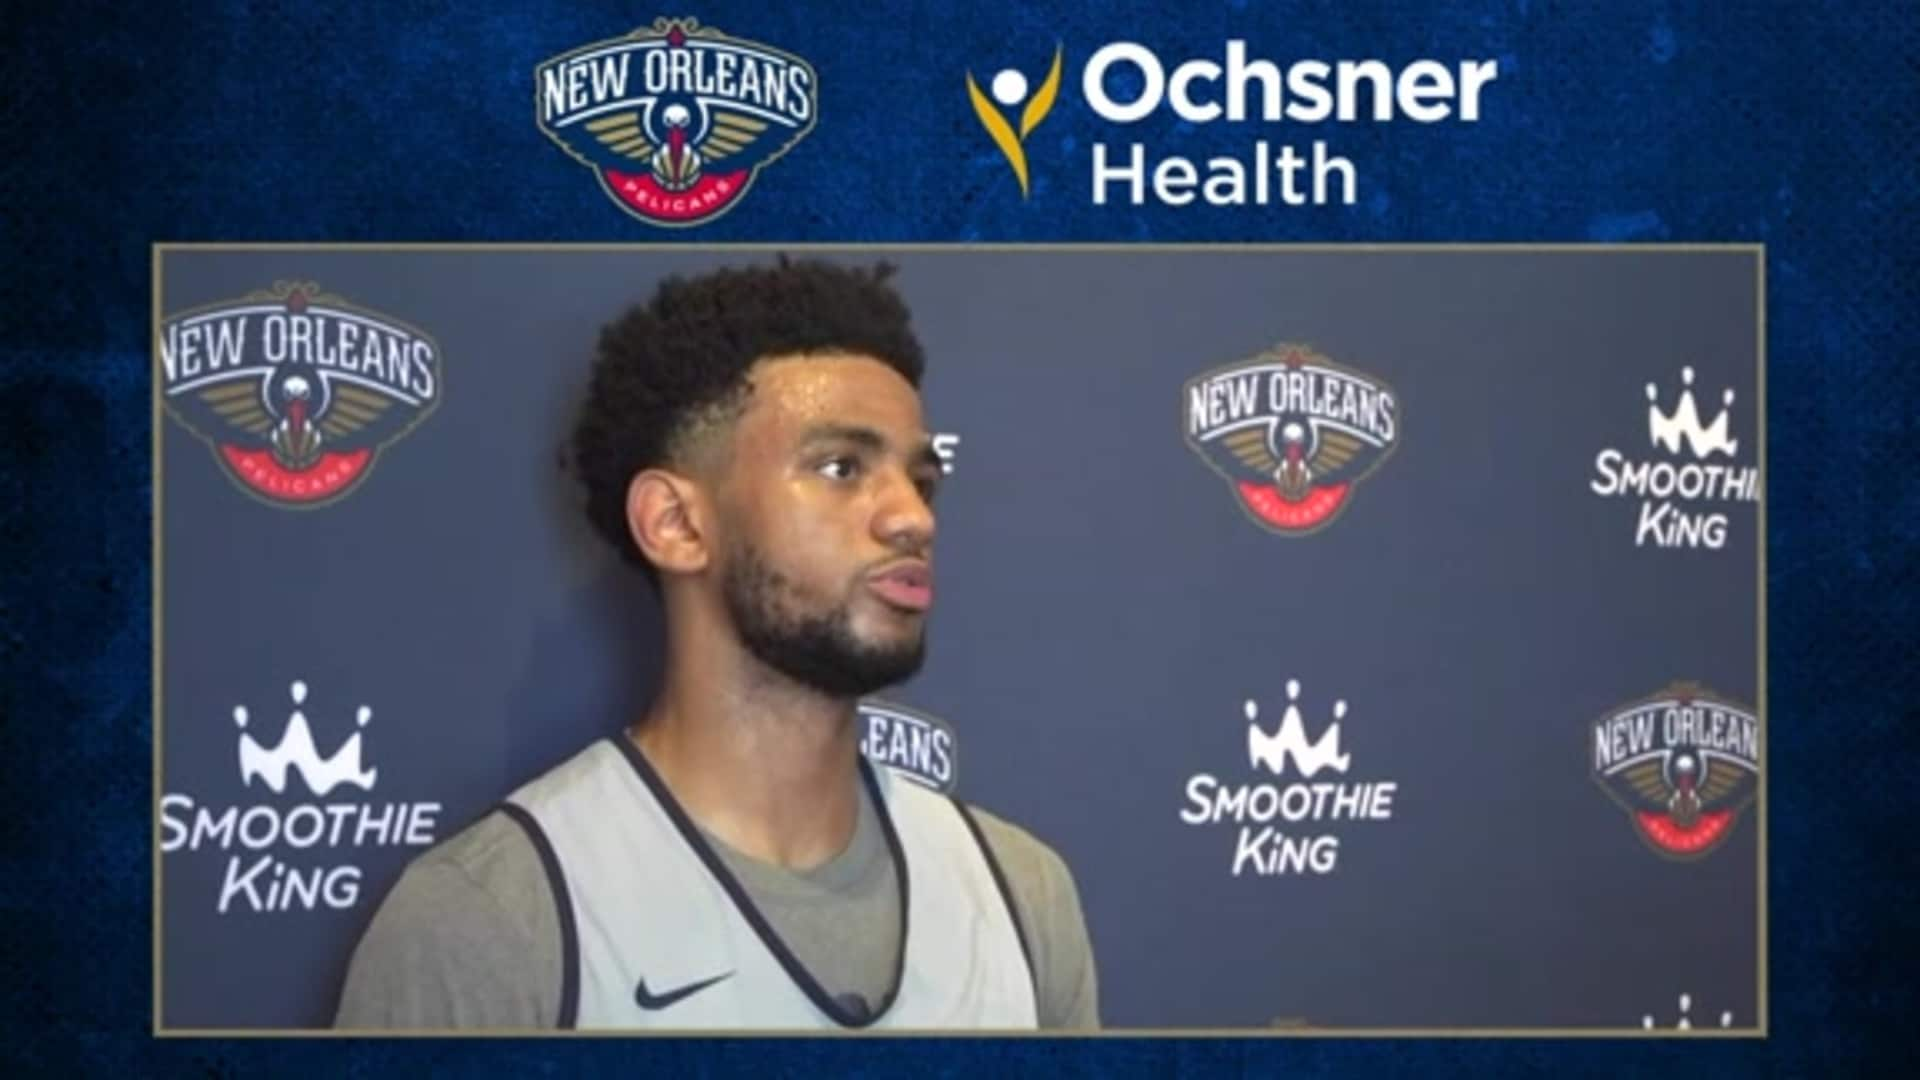 Pelicans Practice: Nickeil Alexander-Walker talks about his journey thus far in the NBA